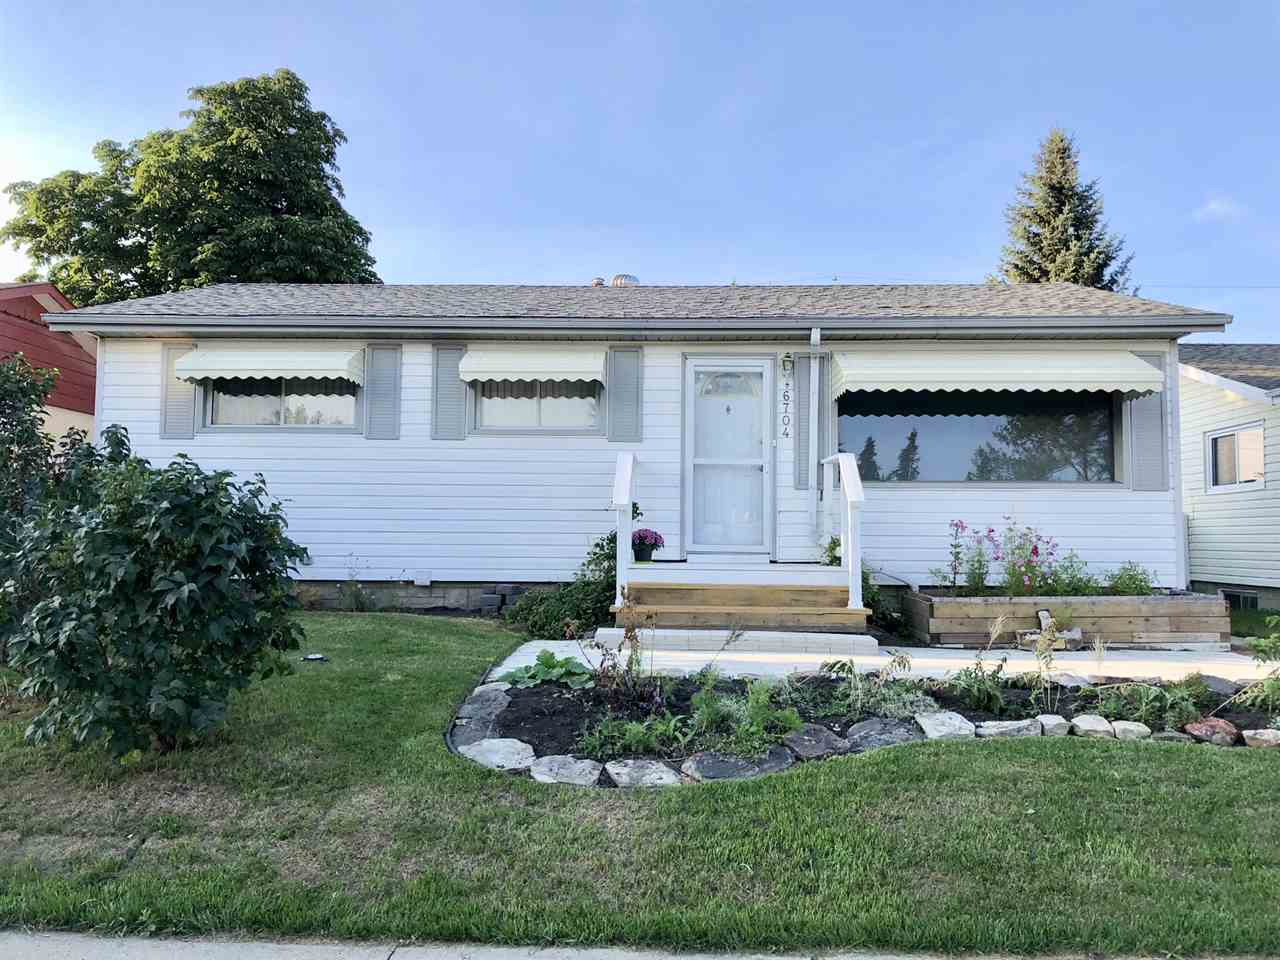 MLS® listing #E4158576 for sale located at 6704 132 Avenue